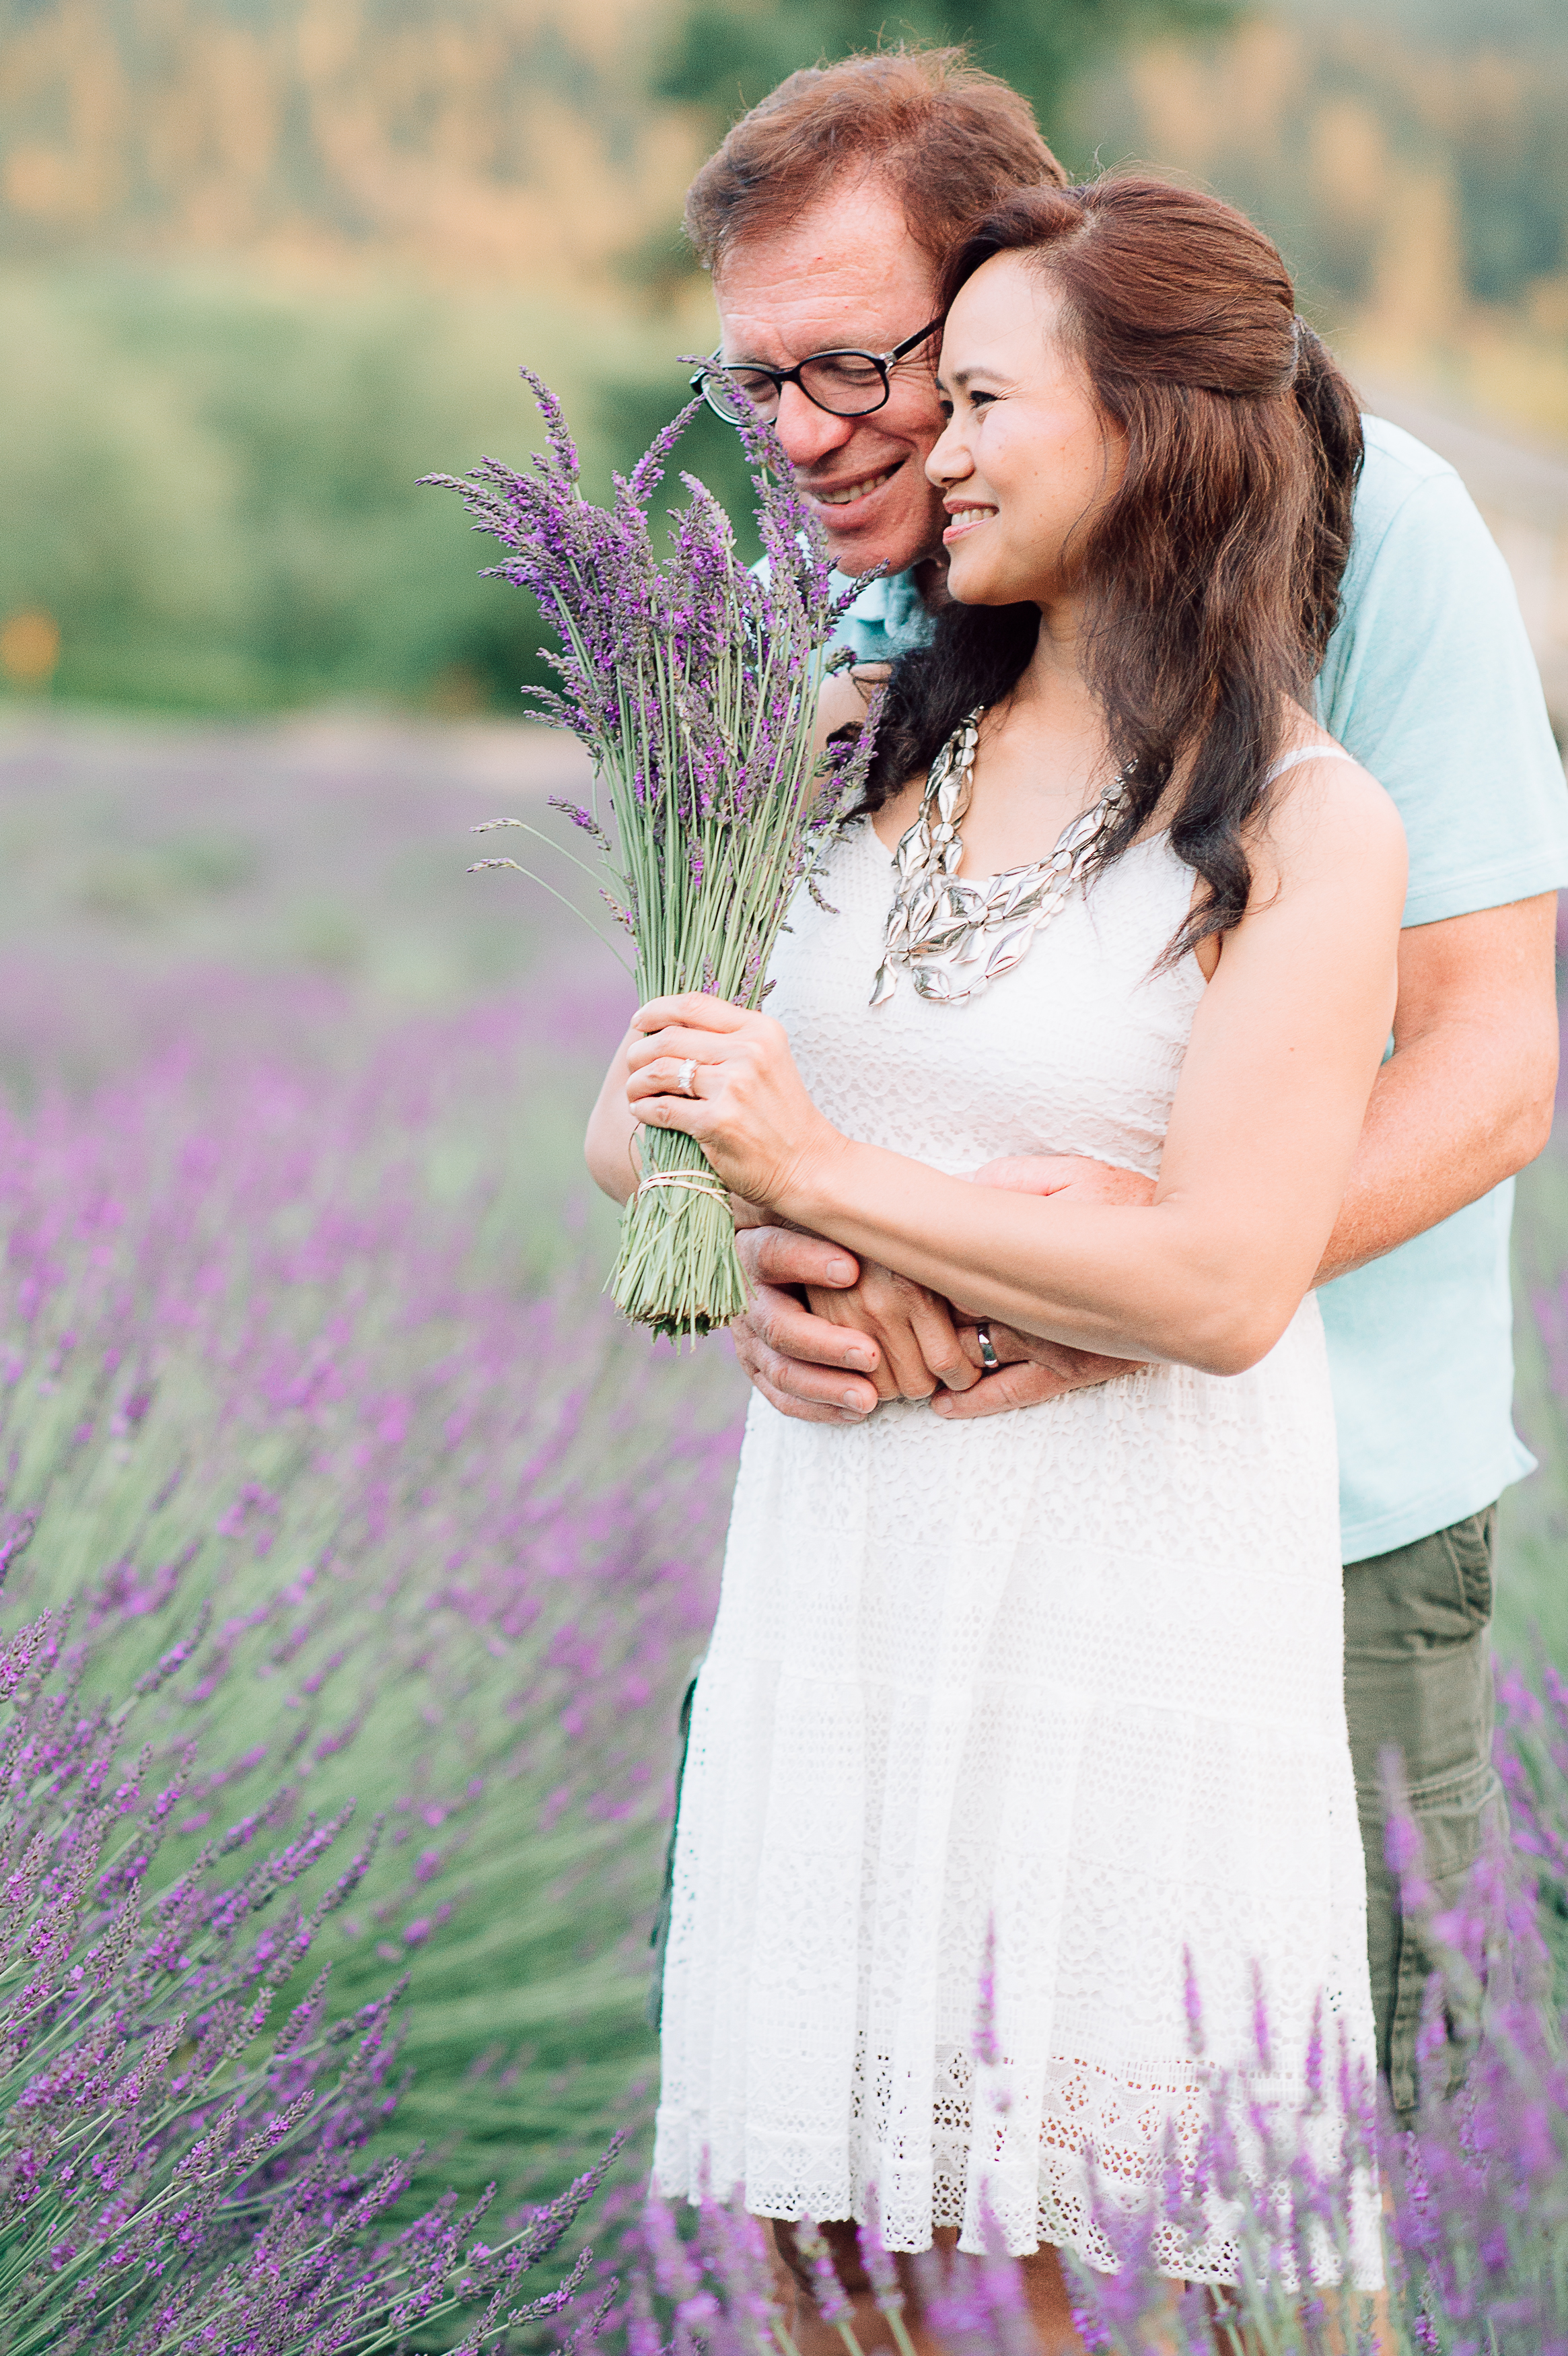 engagement_lavenderfield_youseephotography_LidiaOtto (70).jpg